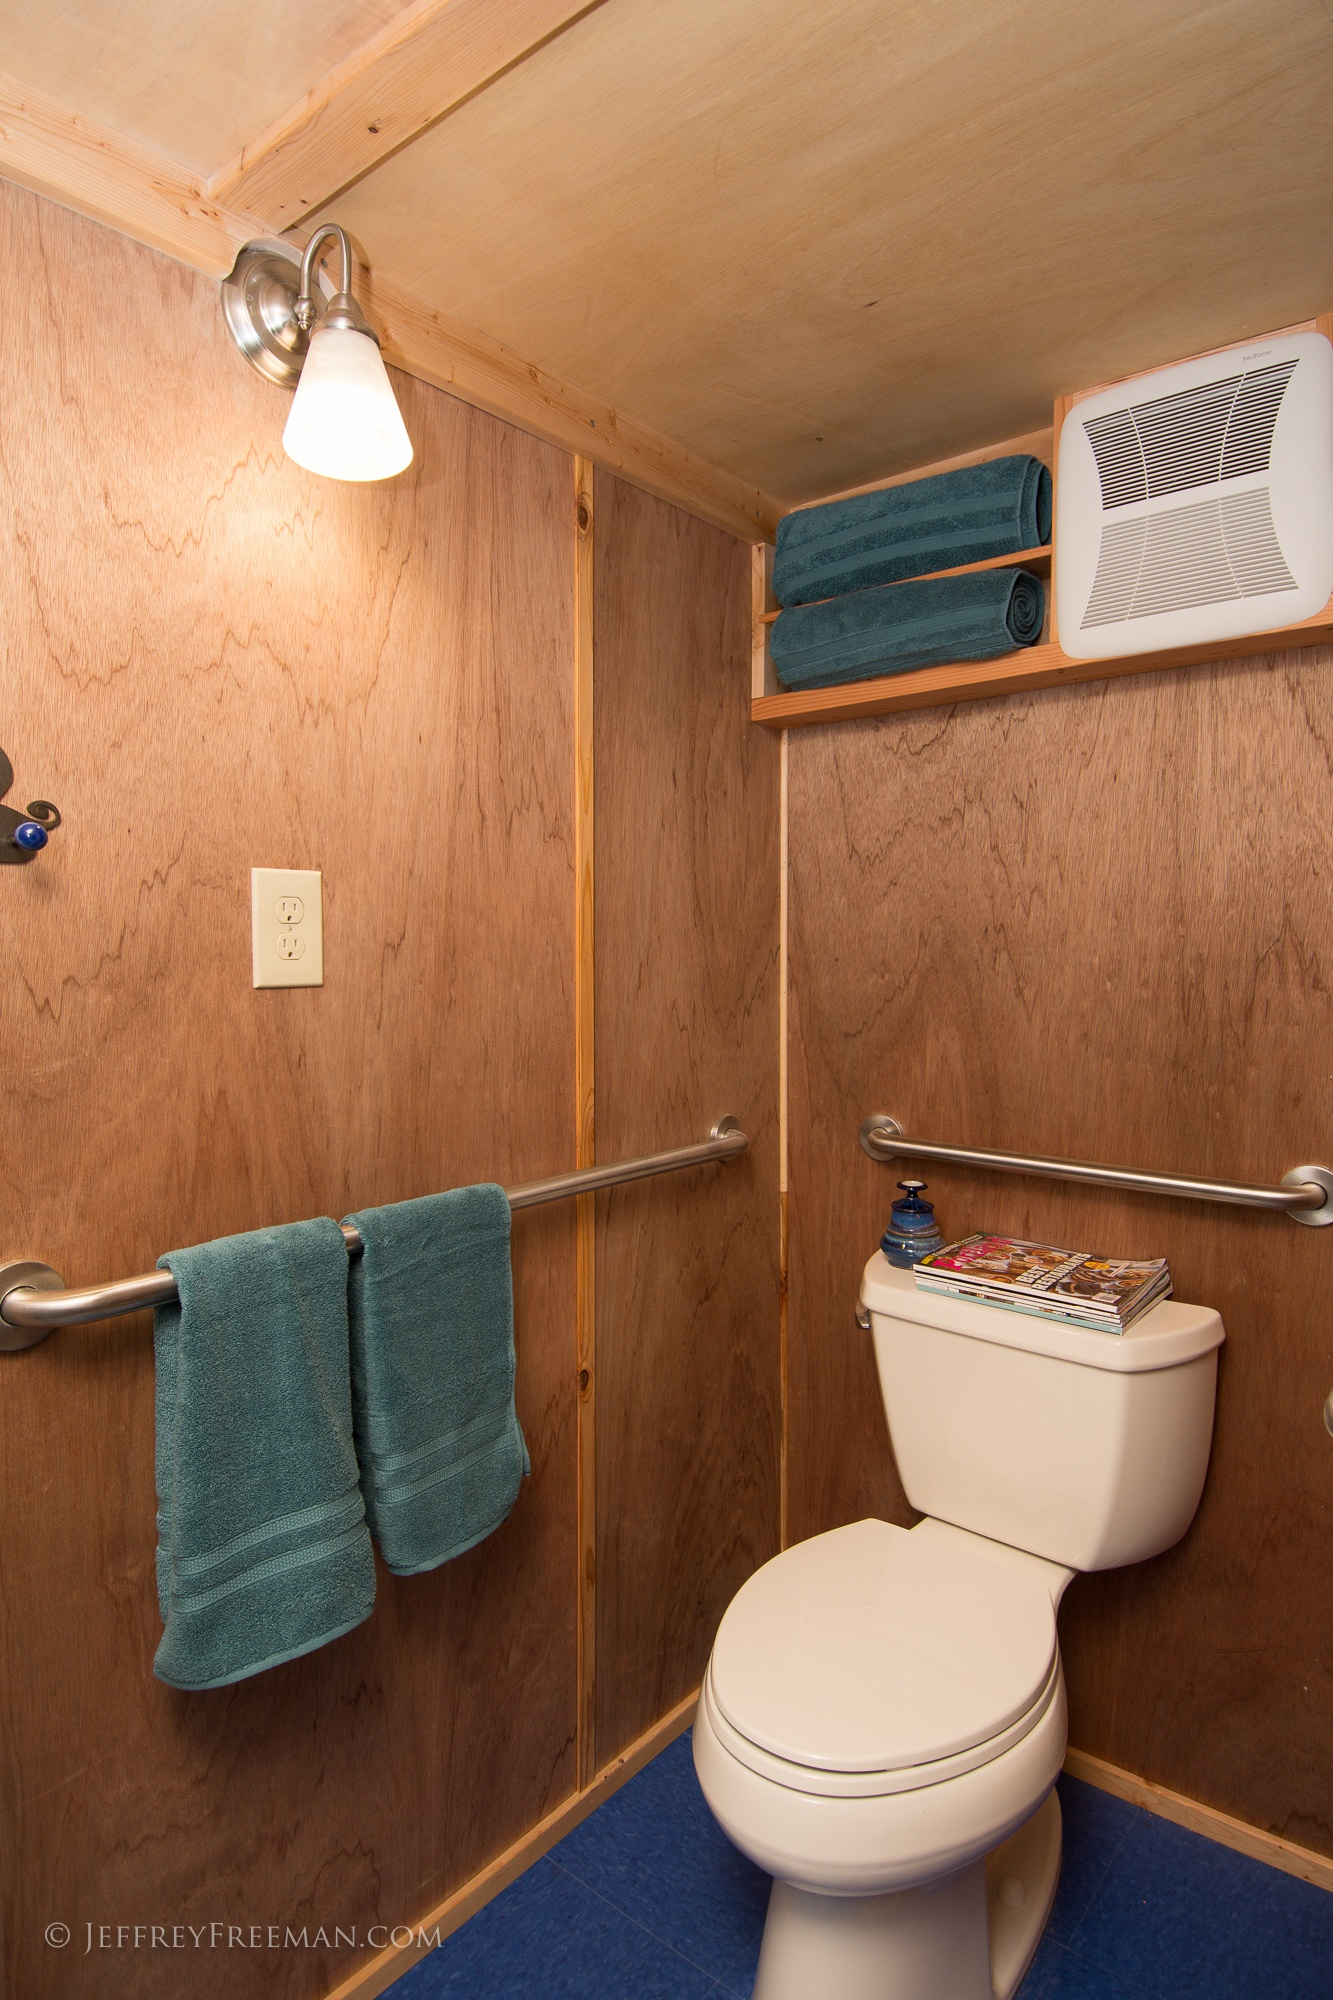 Bathroom - Pacifica by Zyl Vardos at the Tiny House Hotel